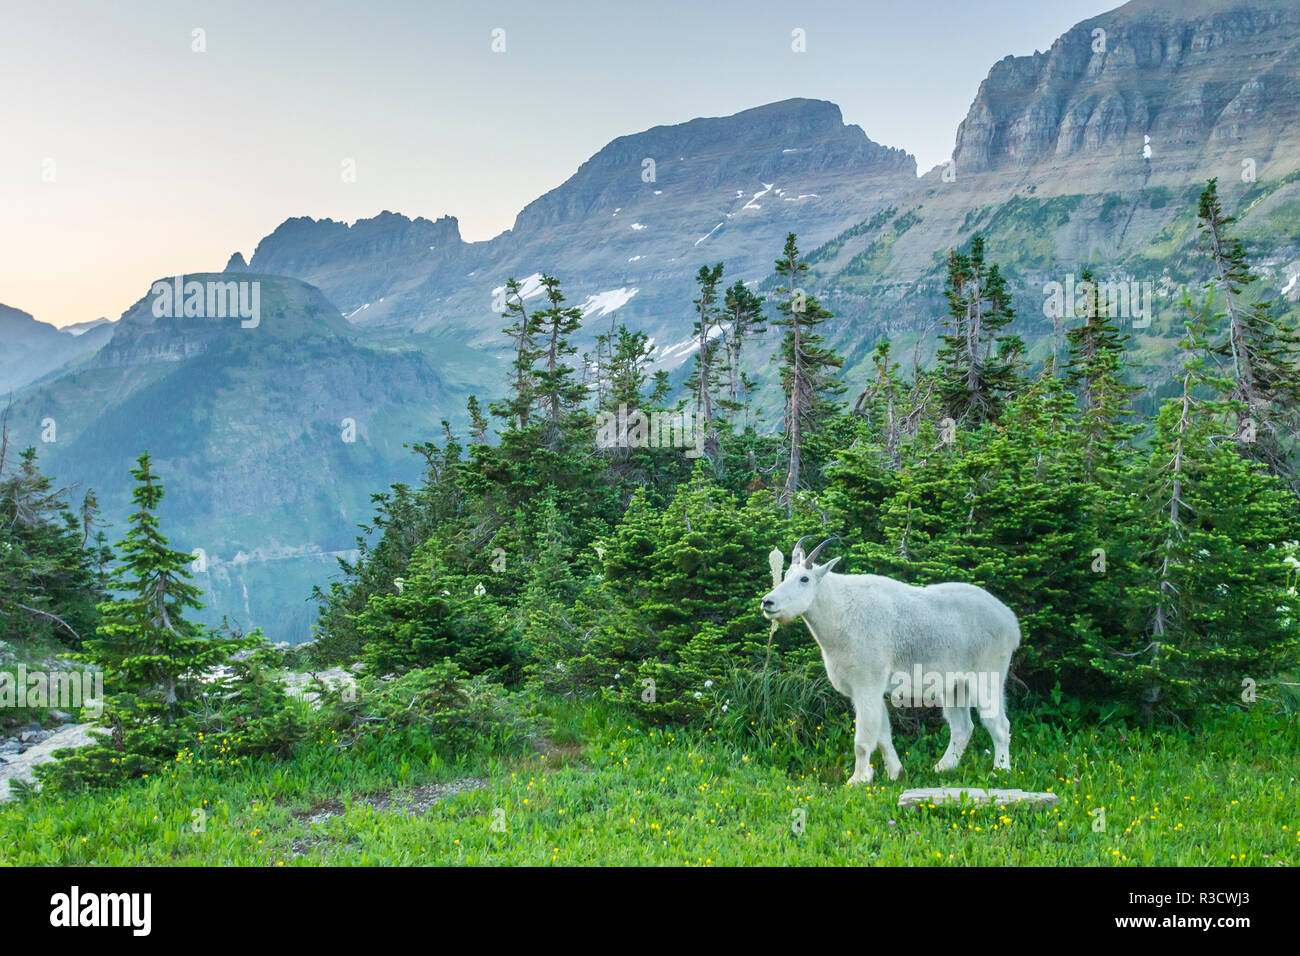 USA, Montana, Glacier National Park. Mountain goat in meadow. Credit as: Cathy and Gordon Illg / Jaynes Gallery / DanitaDelimont.com - Stock Image